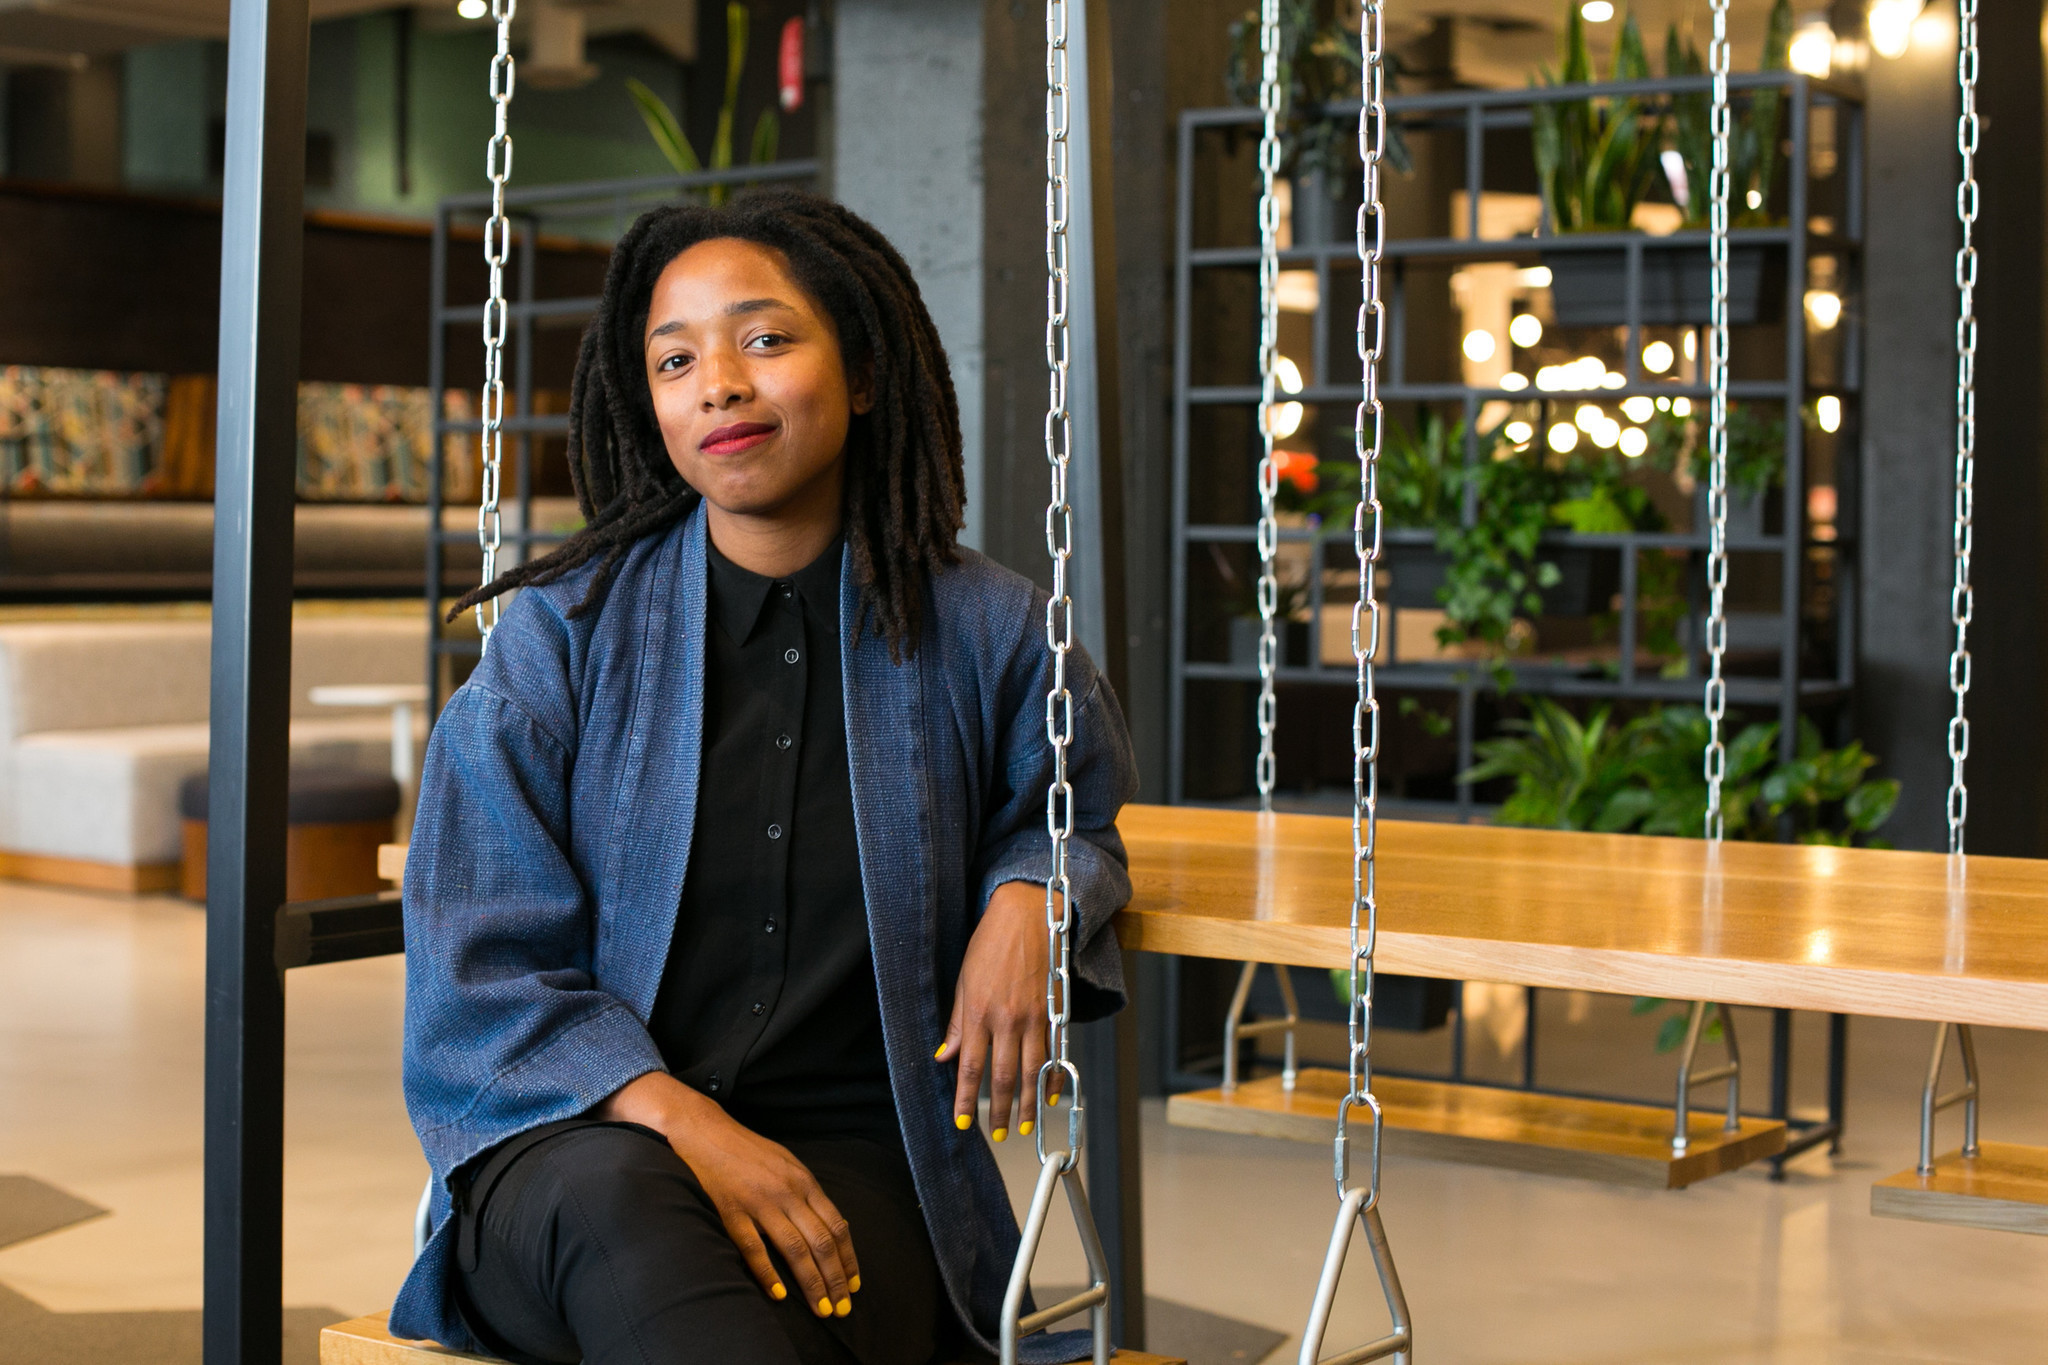 She plugs into big data and gets free avocados at Uptake